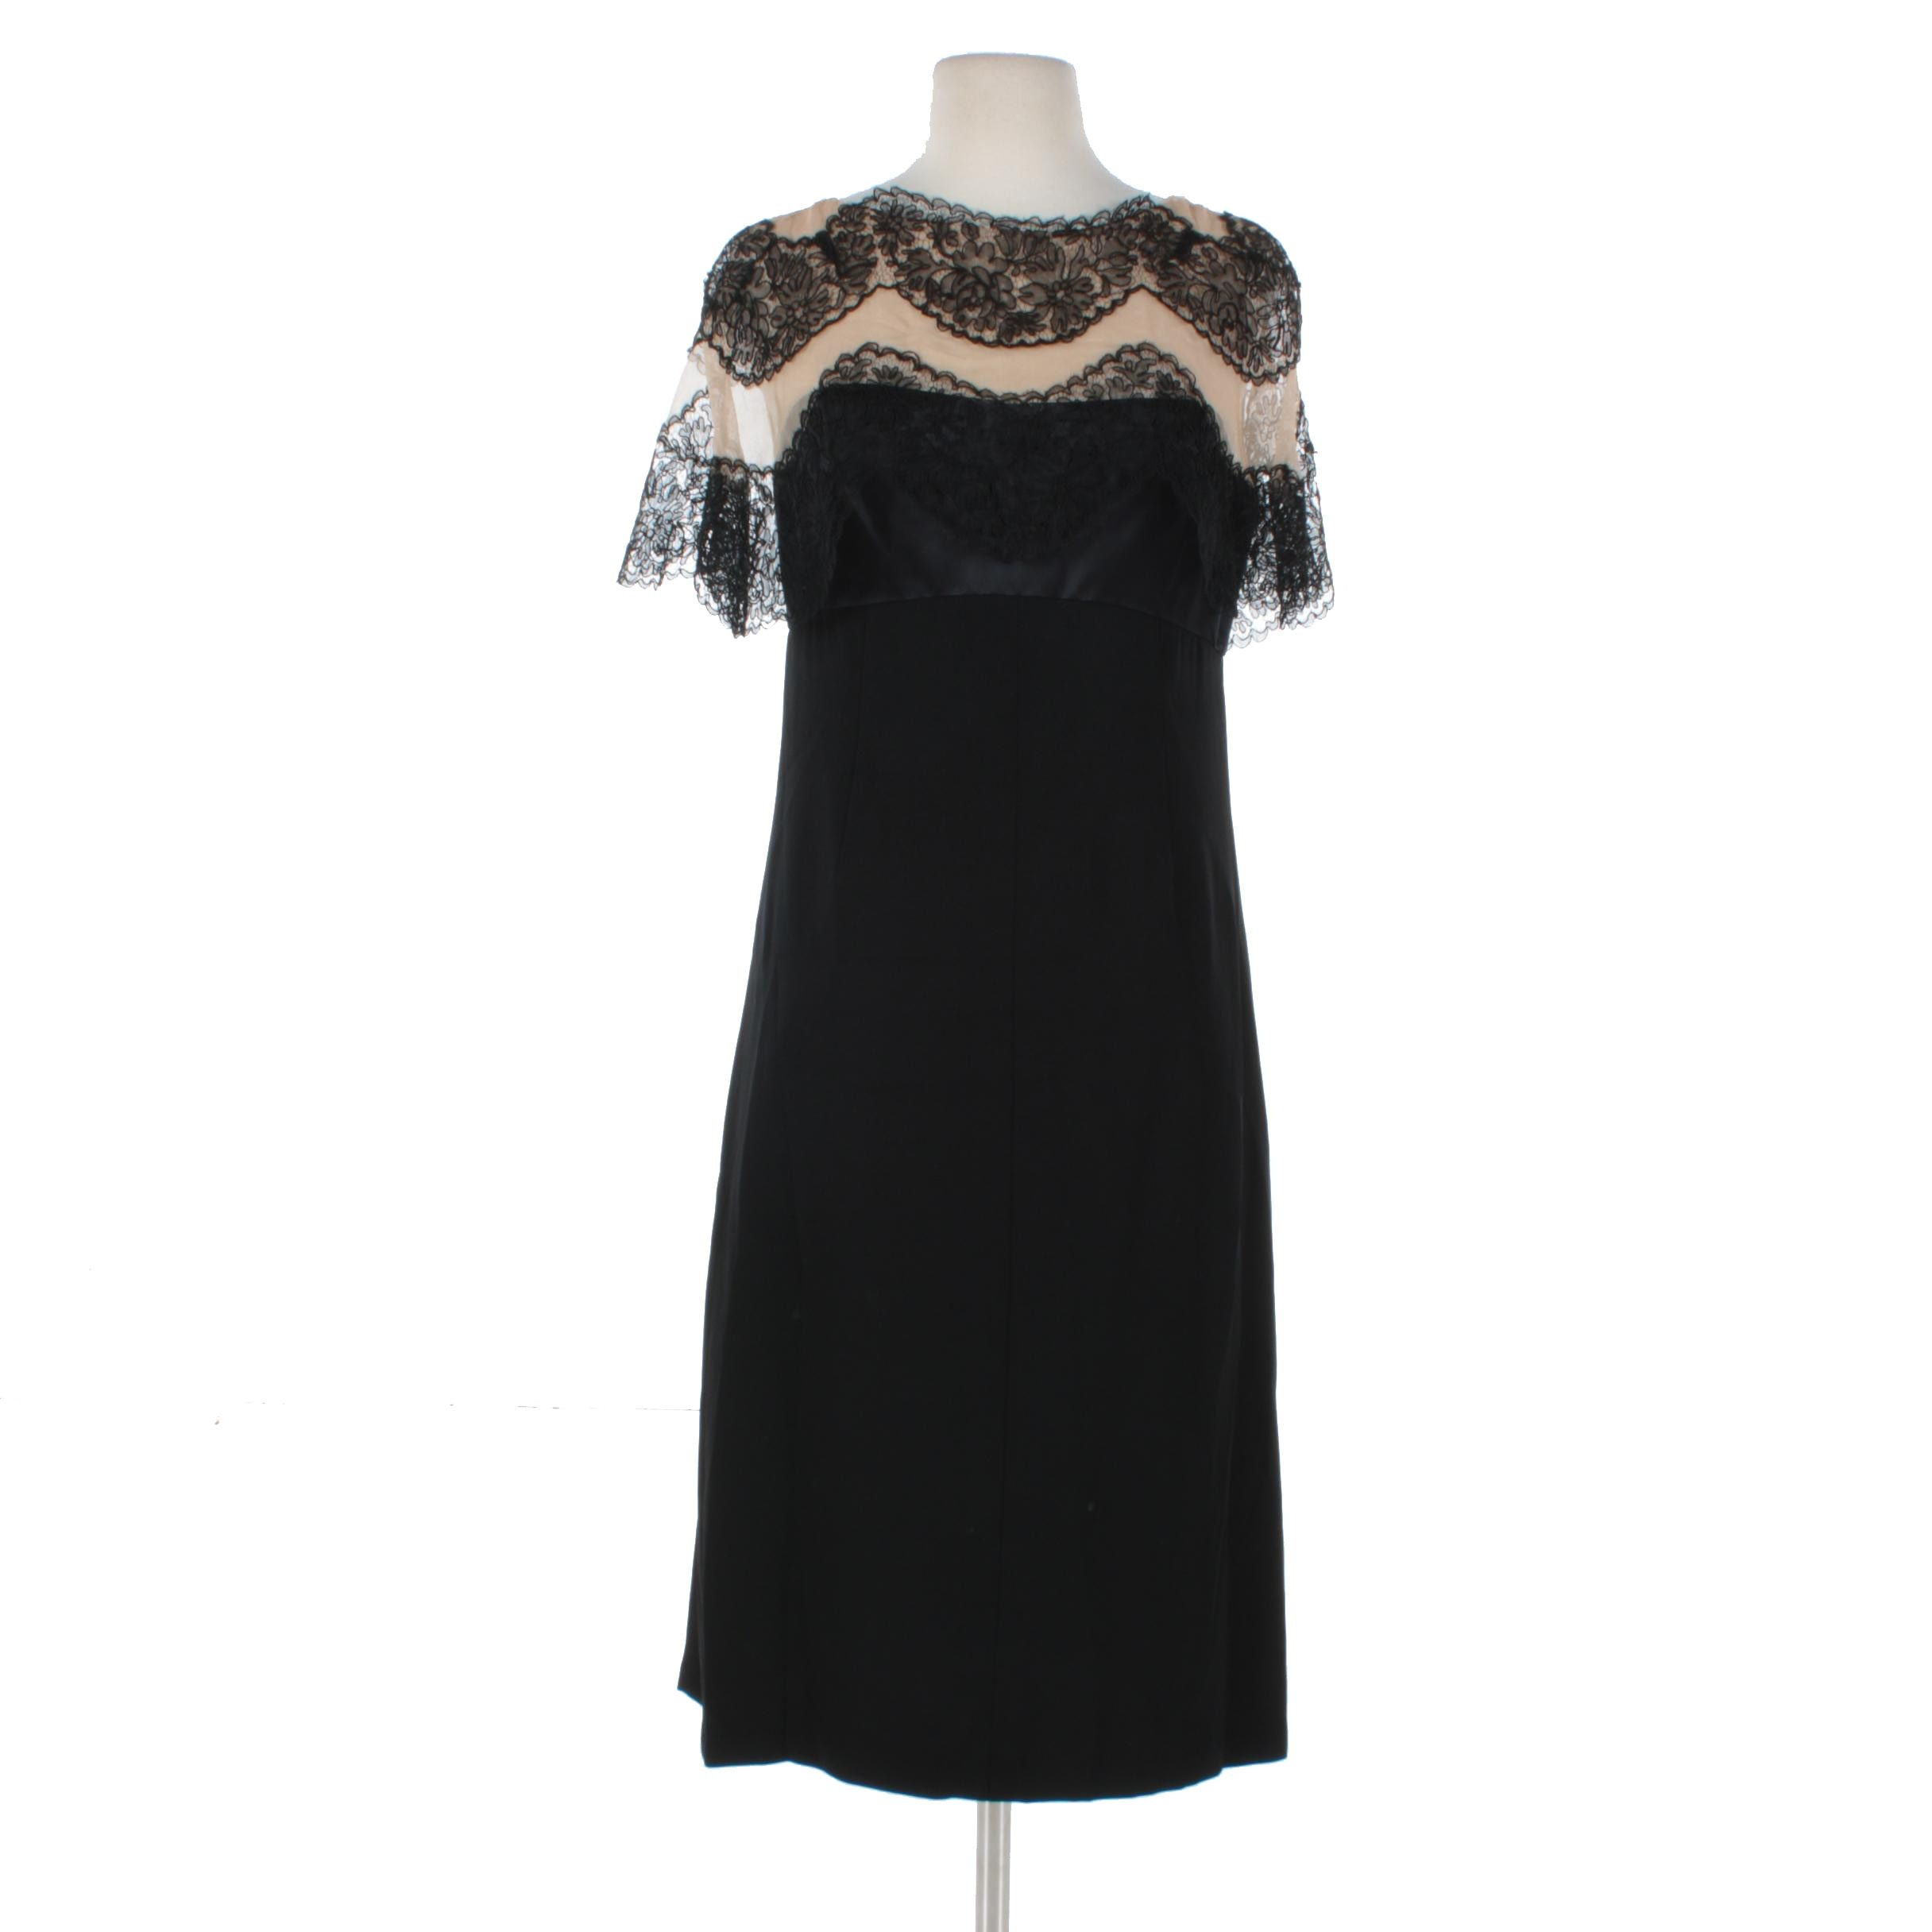 Black Lace Trim Cocktail Dress